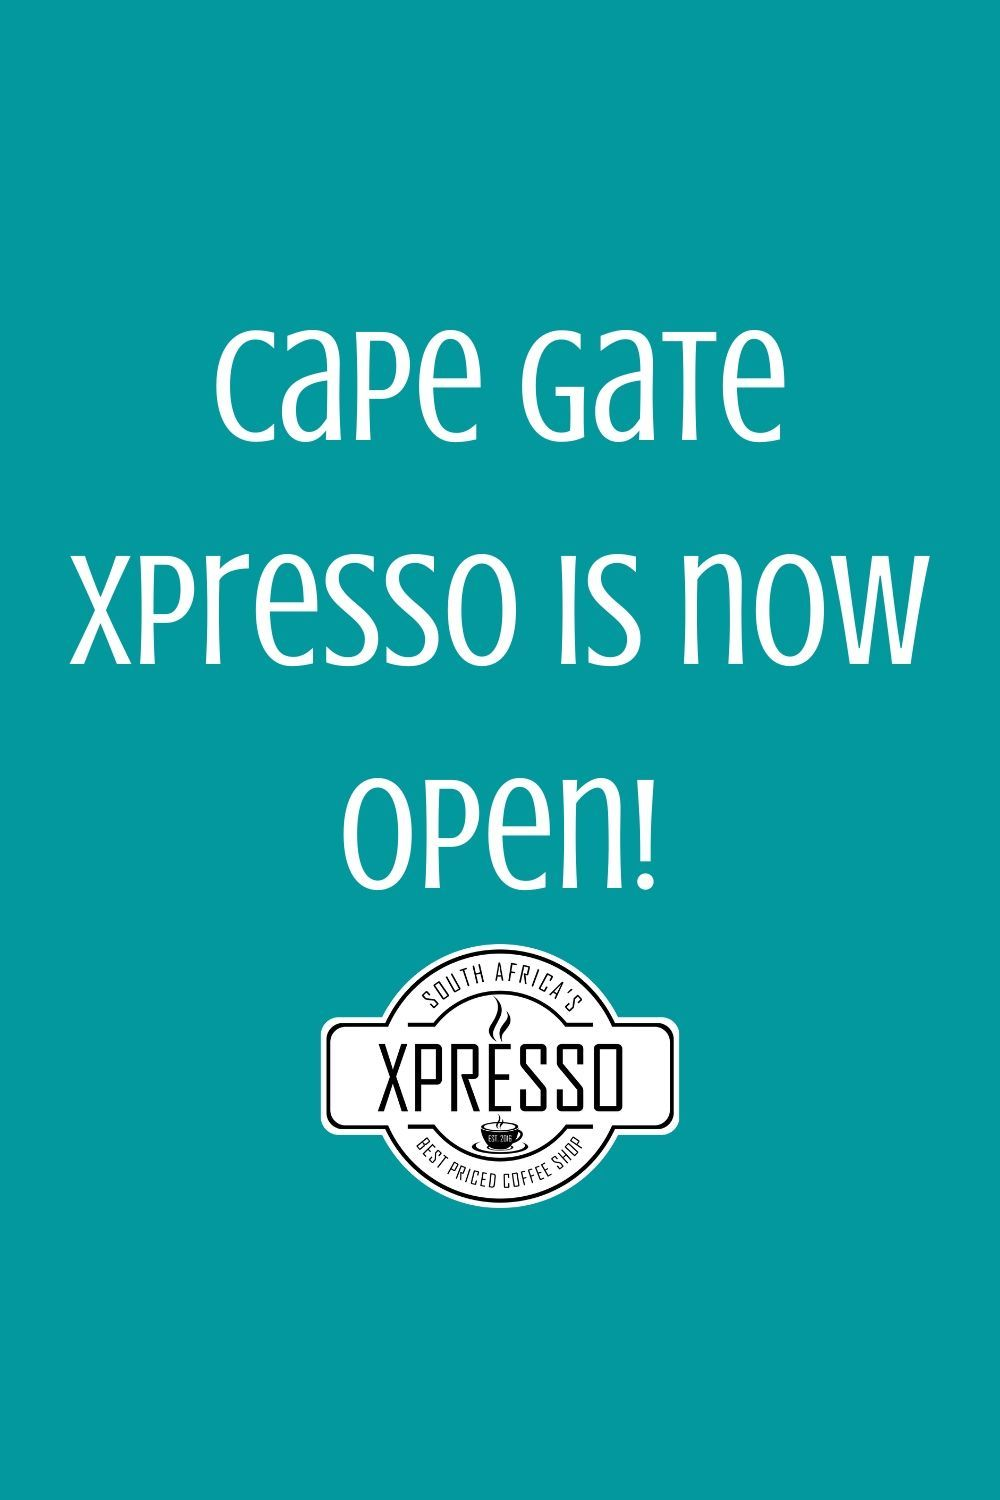 Go show your love for our Cape Gate Branch today, they're